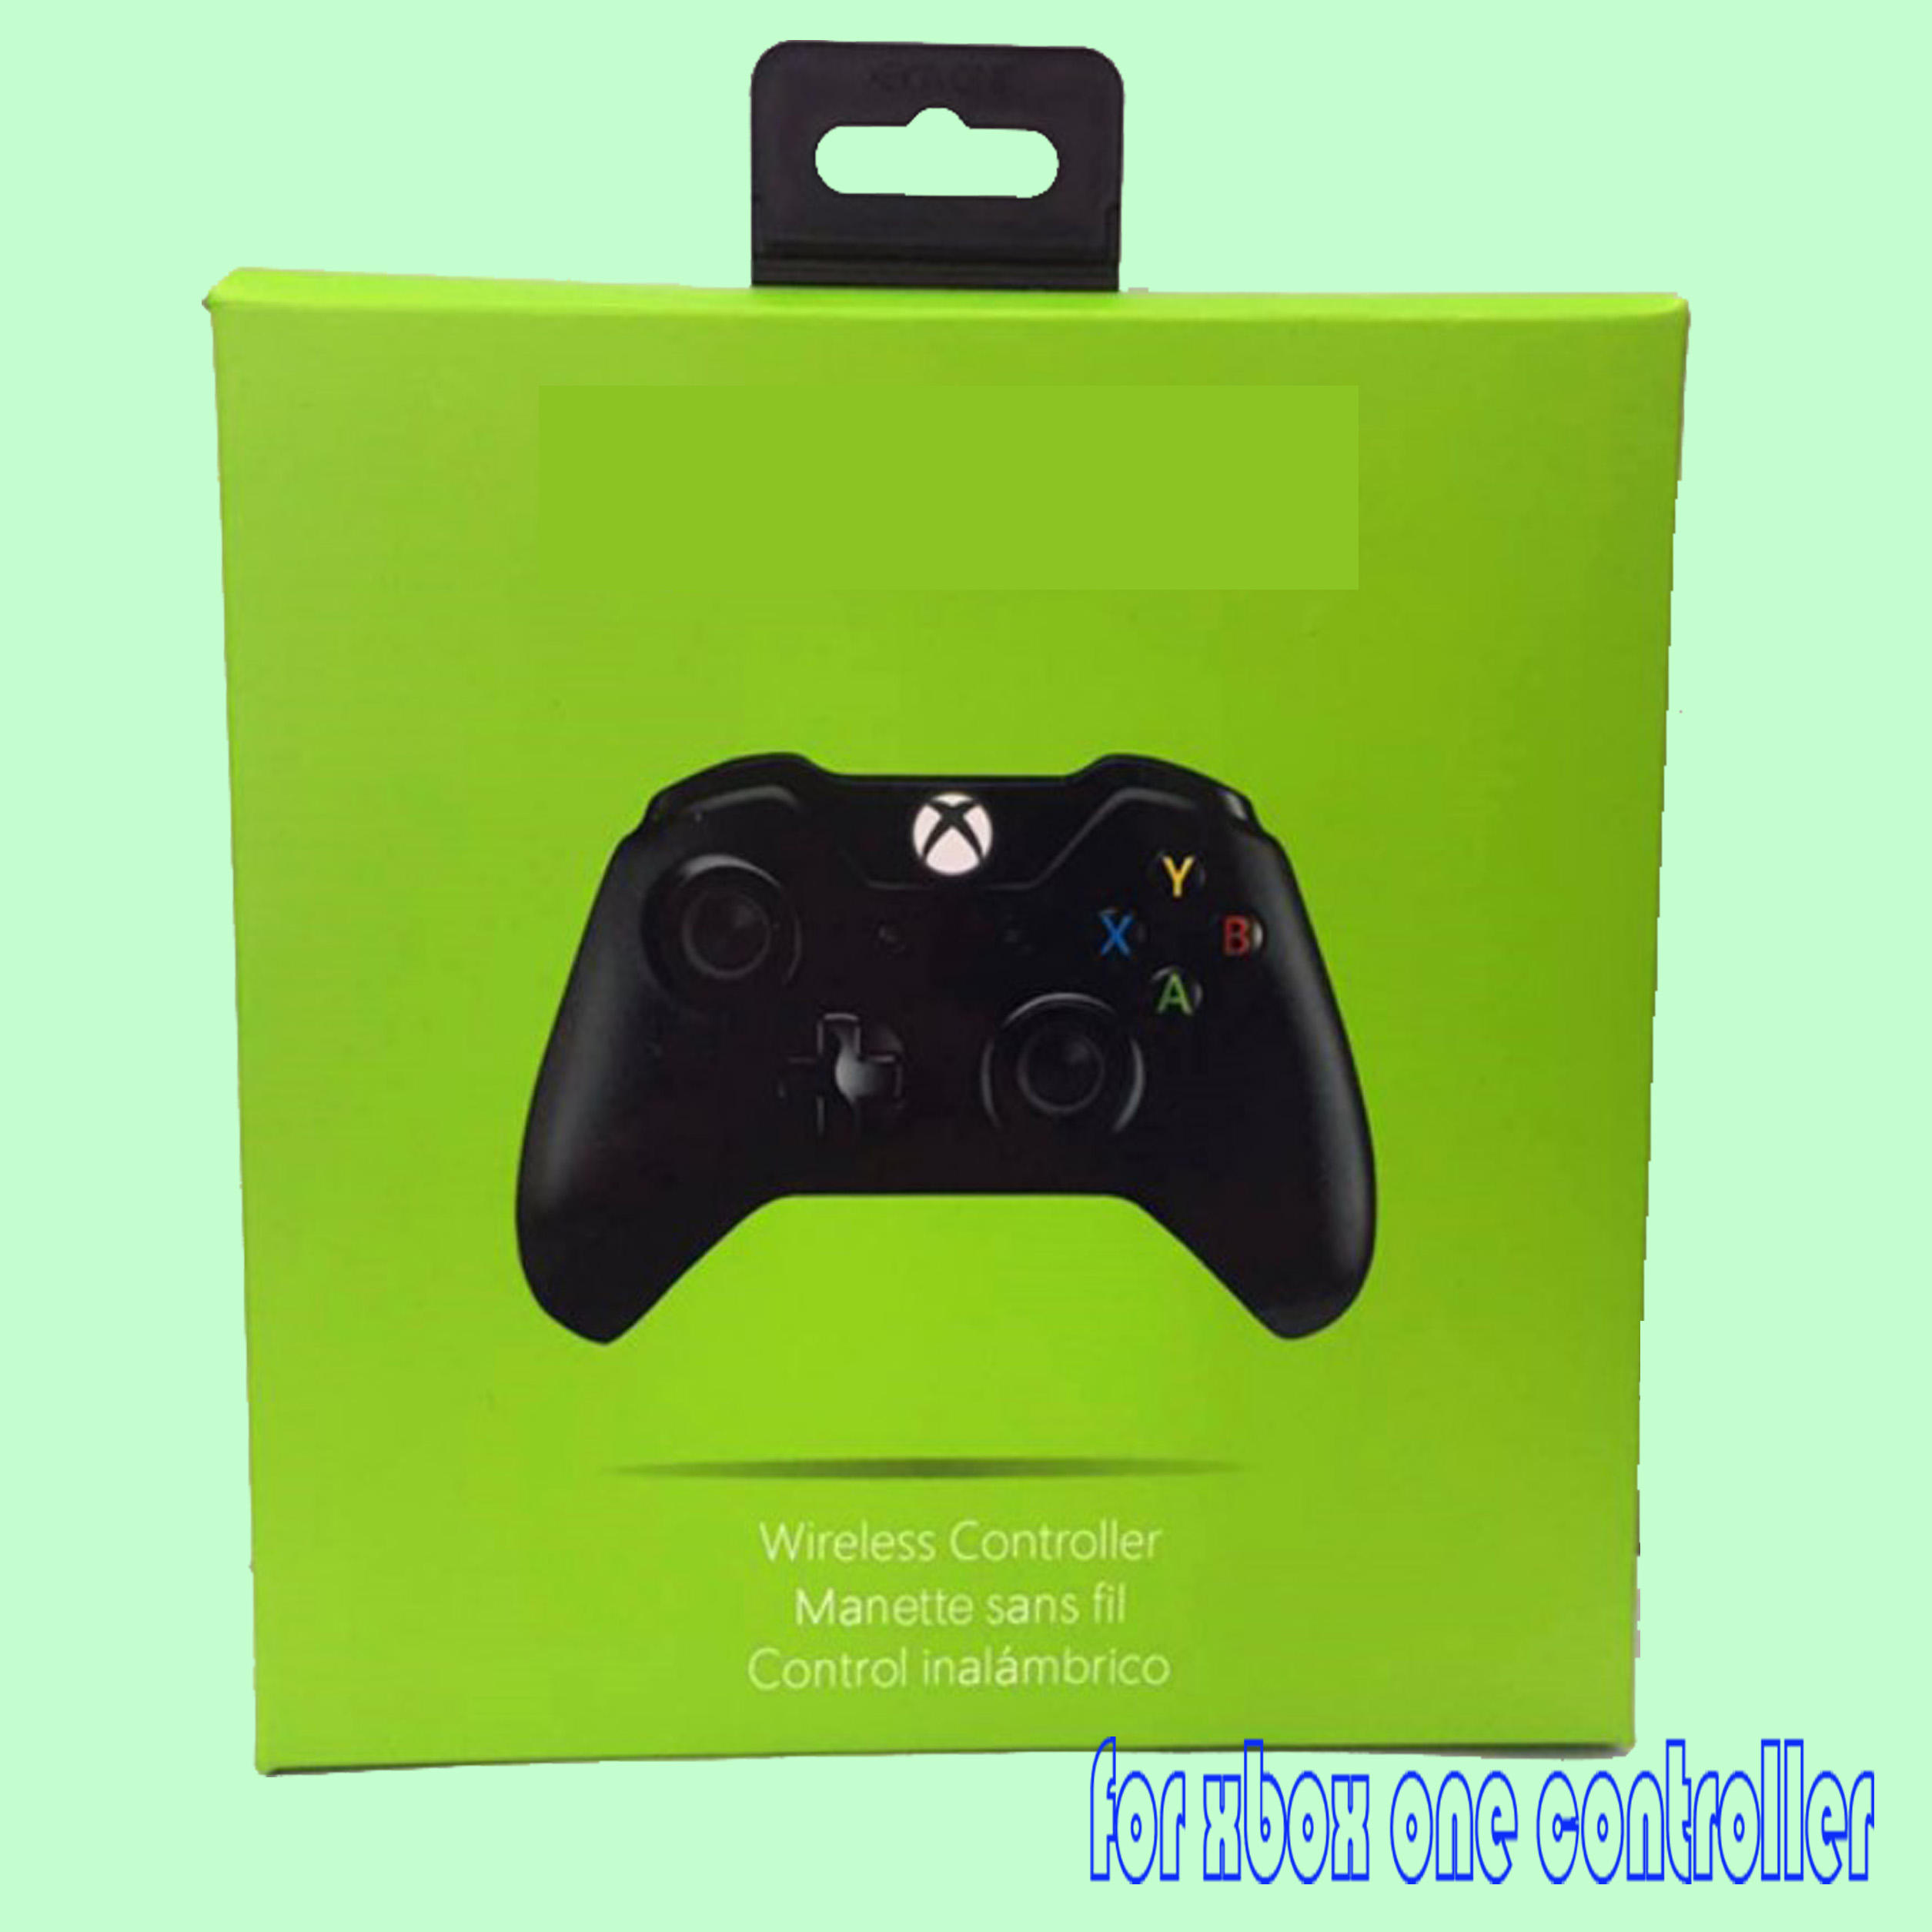 2020 Hot!!! Wireless Controller Gamepad For Xbox One Control For PS3 For PC For Android phone For Xbox One S/X Console Joystick